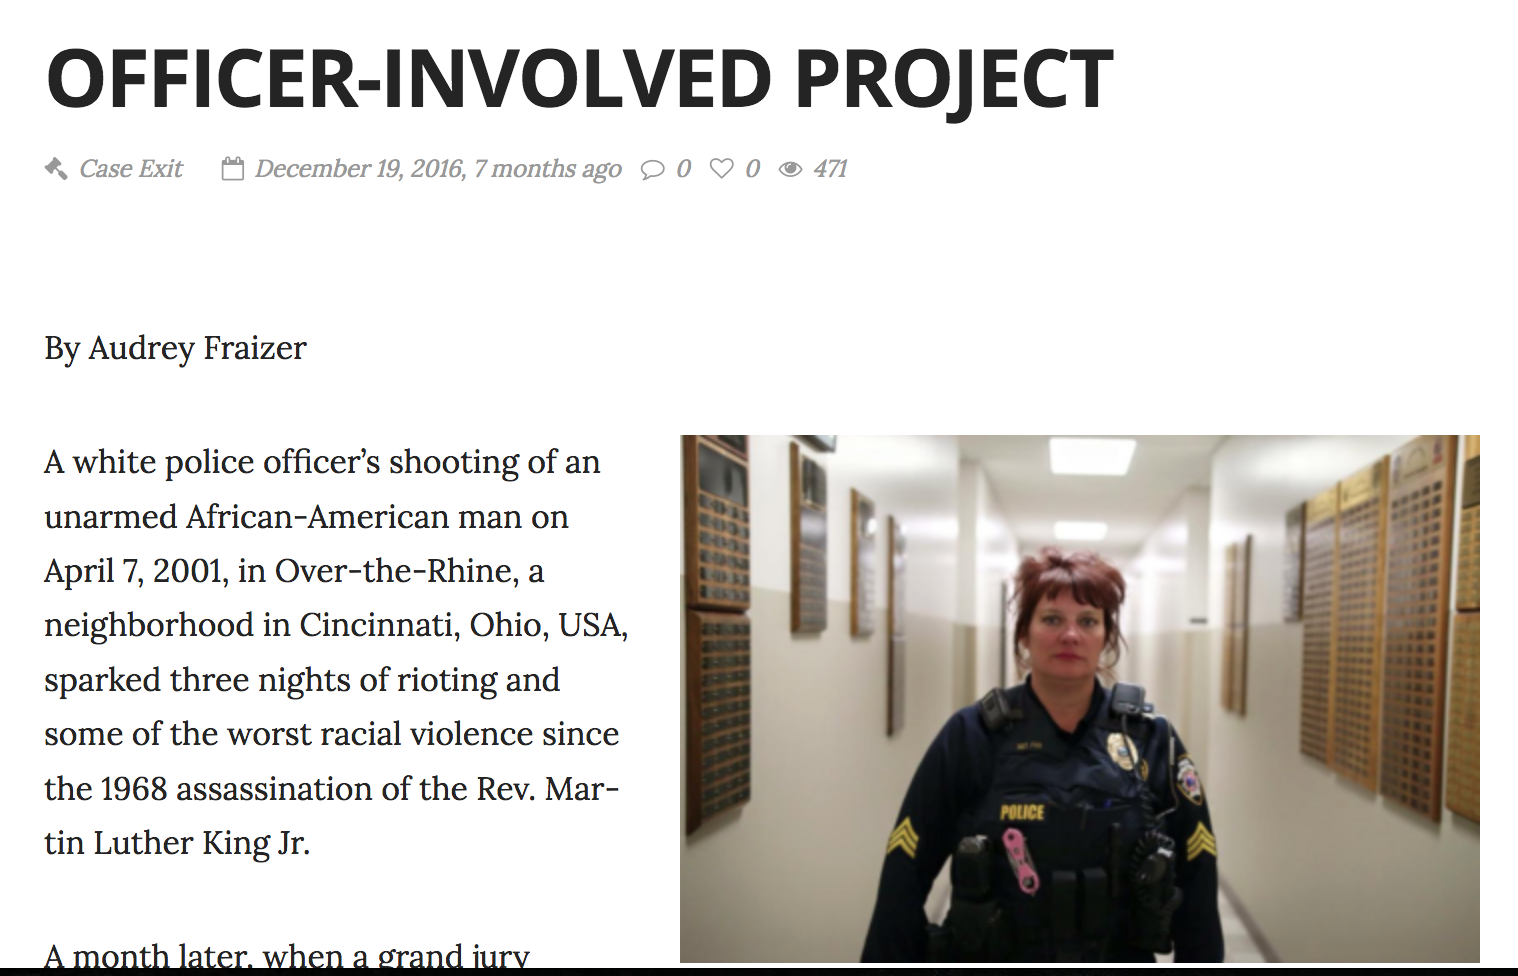 Officer-Involved Project   Journal of Emergency Dispatch